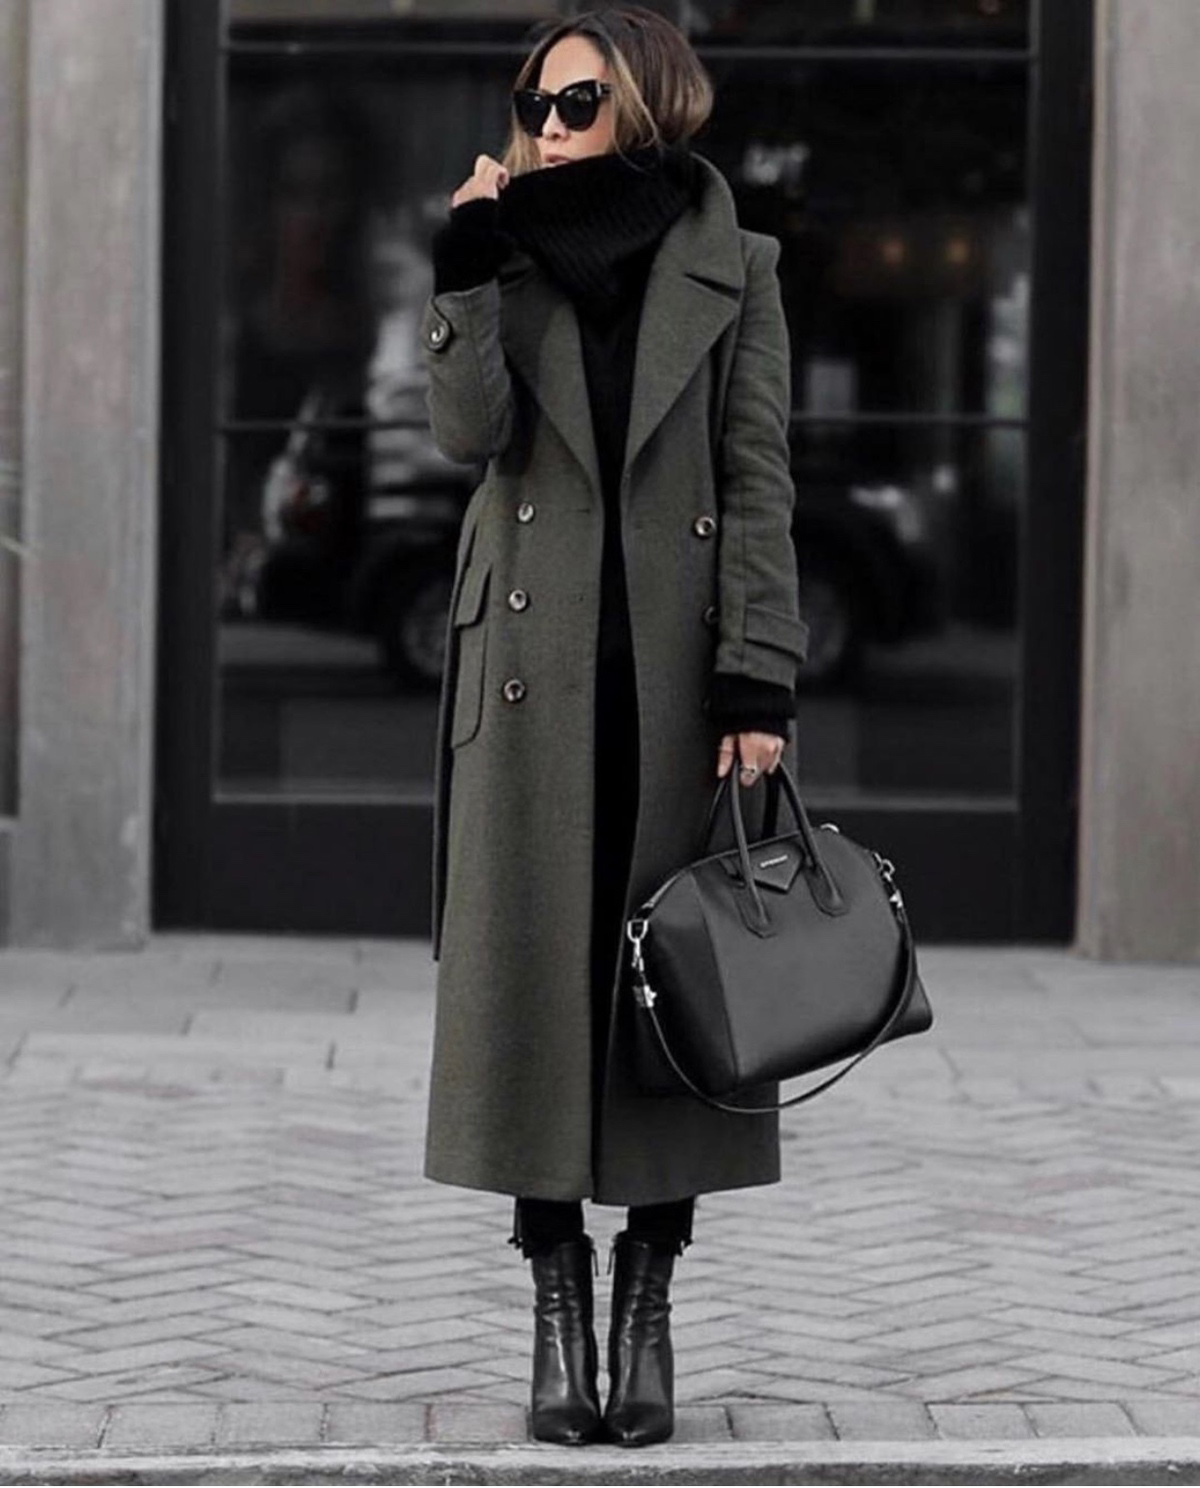 military coat for women, stylish military coat, fall outfit inspiration by lolario style | lolariostyle.com